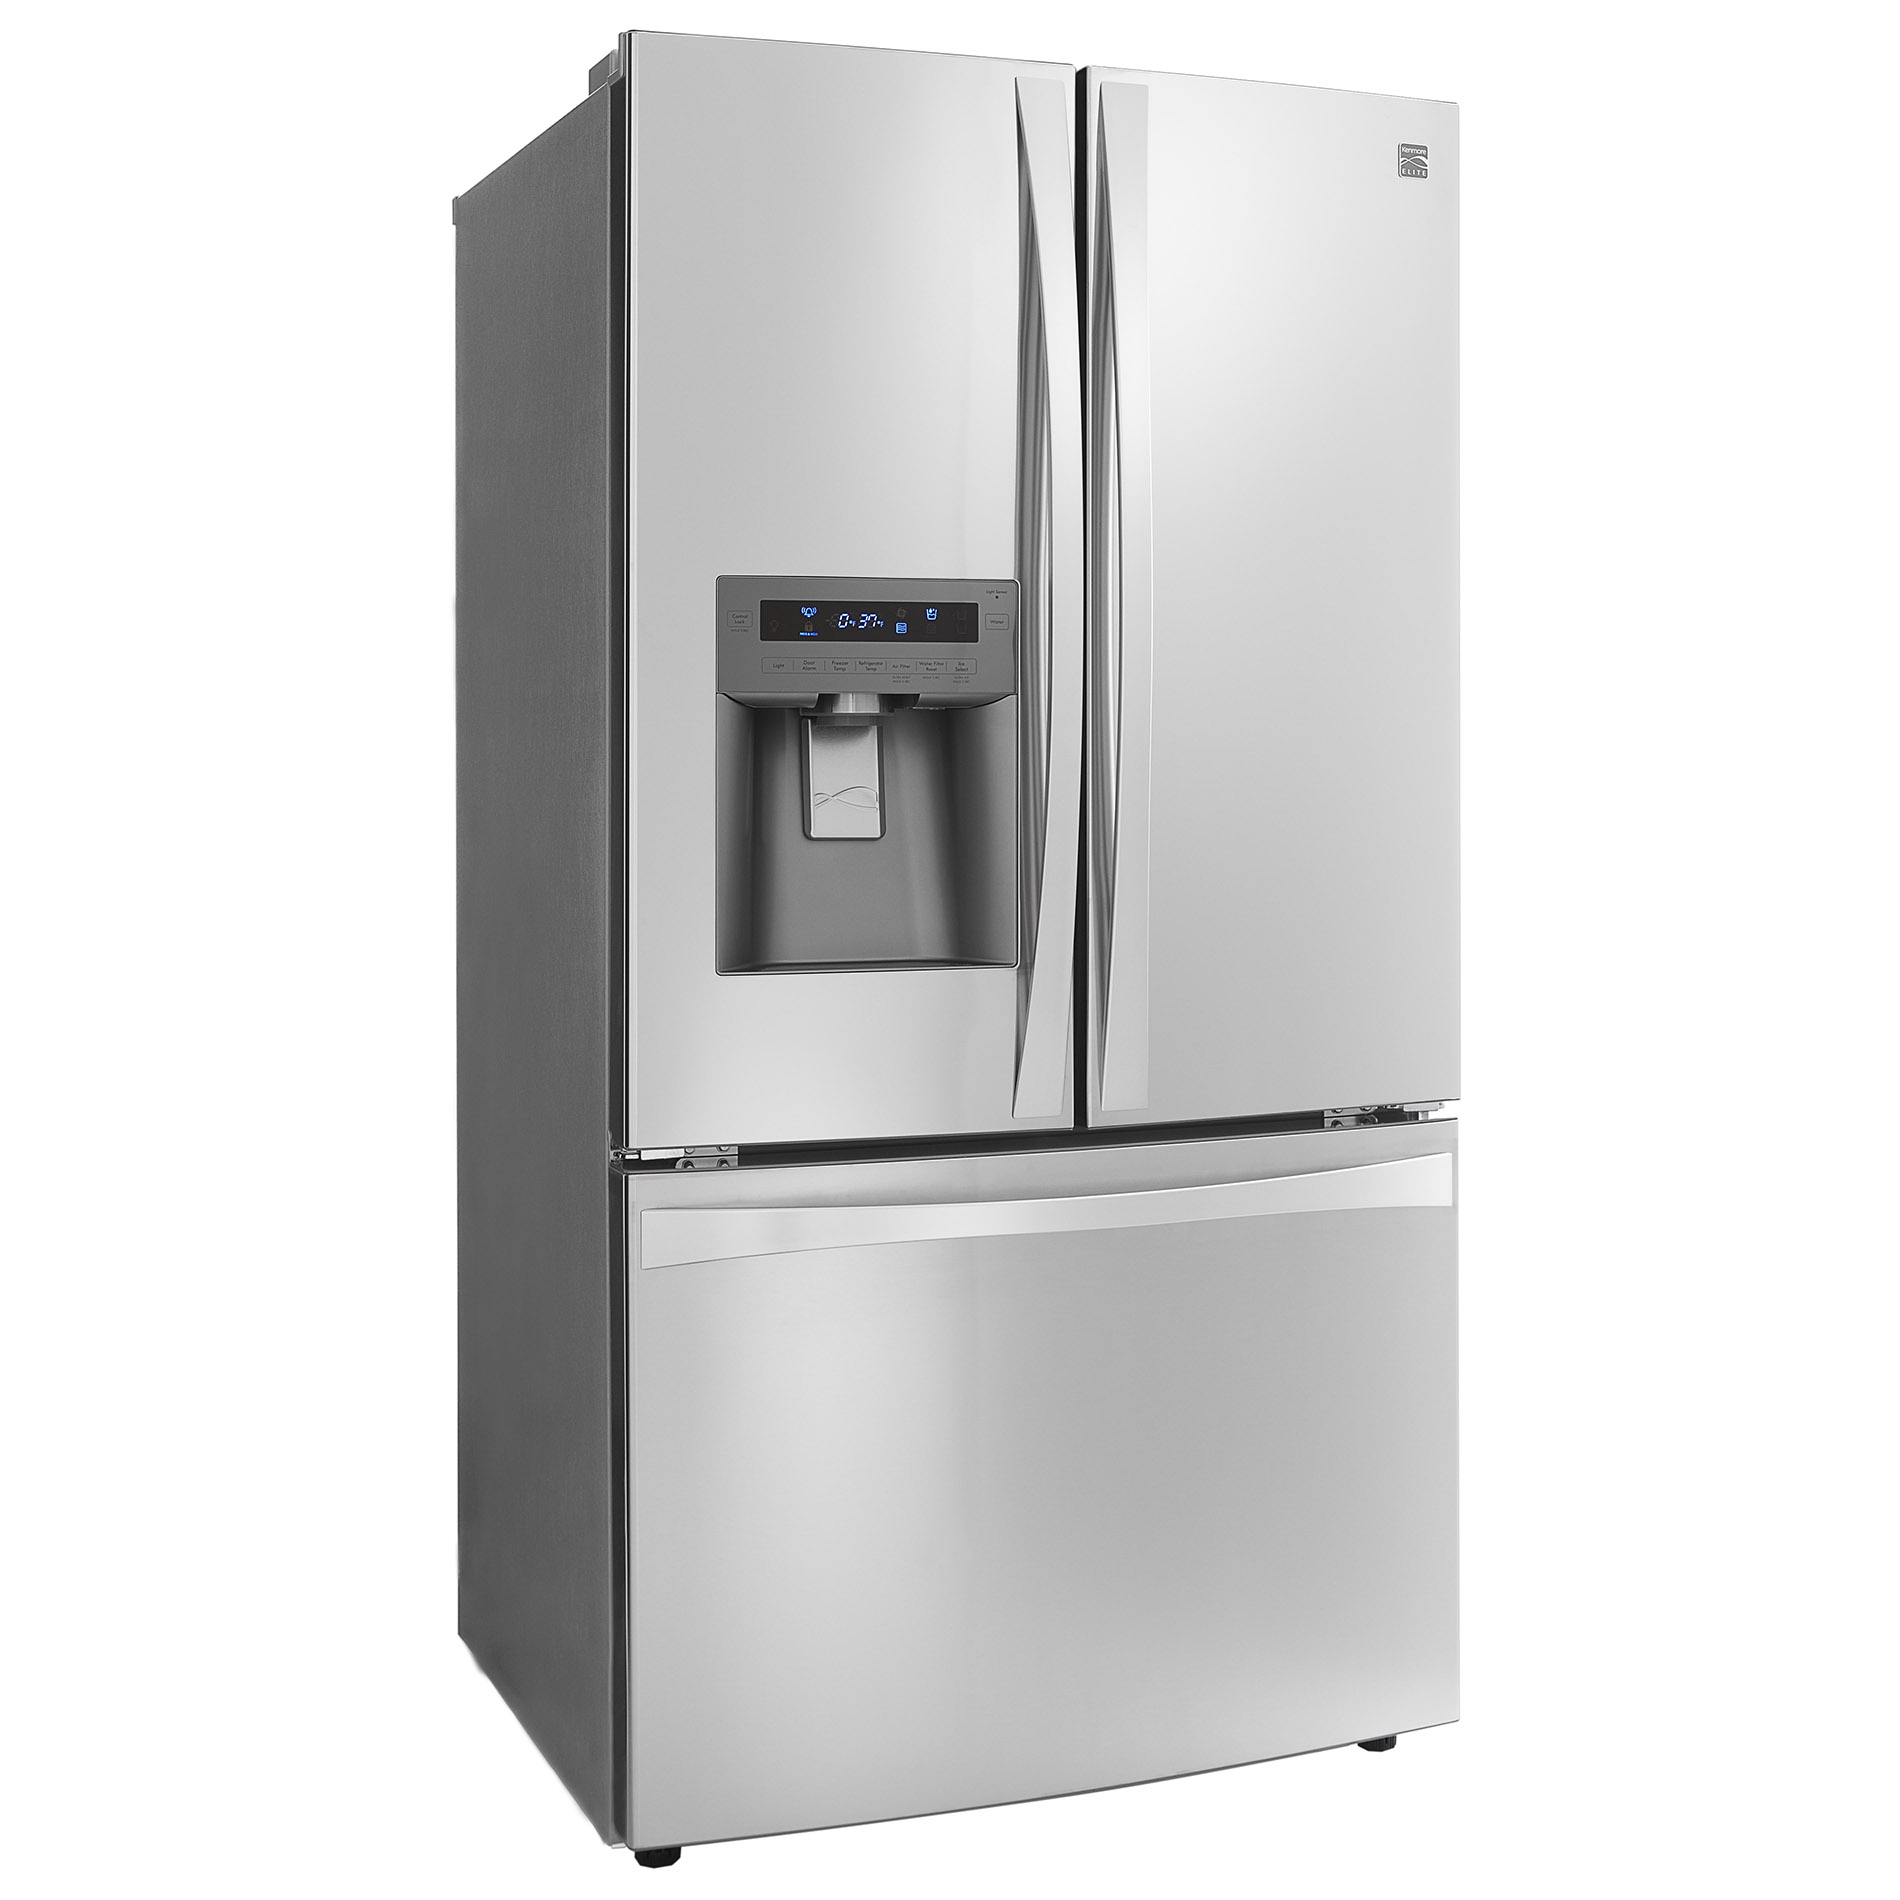 Kenmore Elite 33 cu. ft. French Door Bottom-Freezer Refrigerator - Stainless Steel